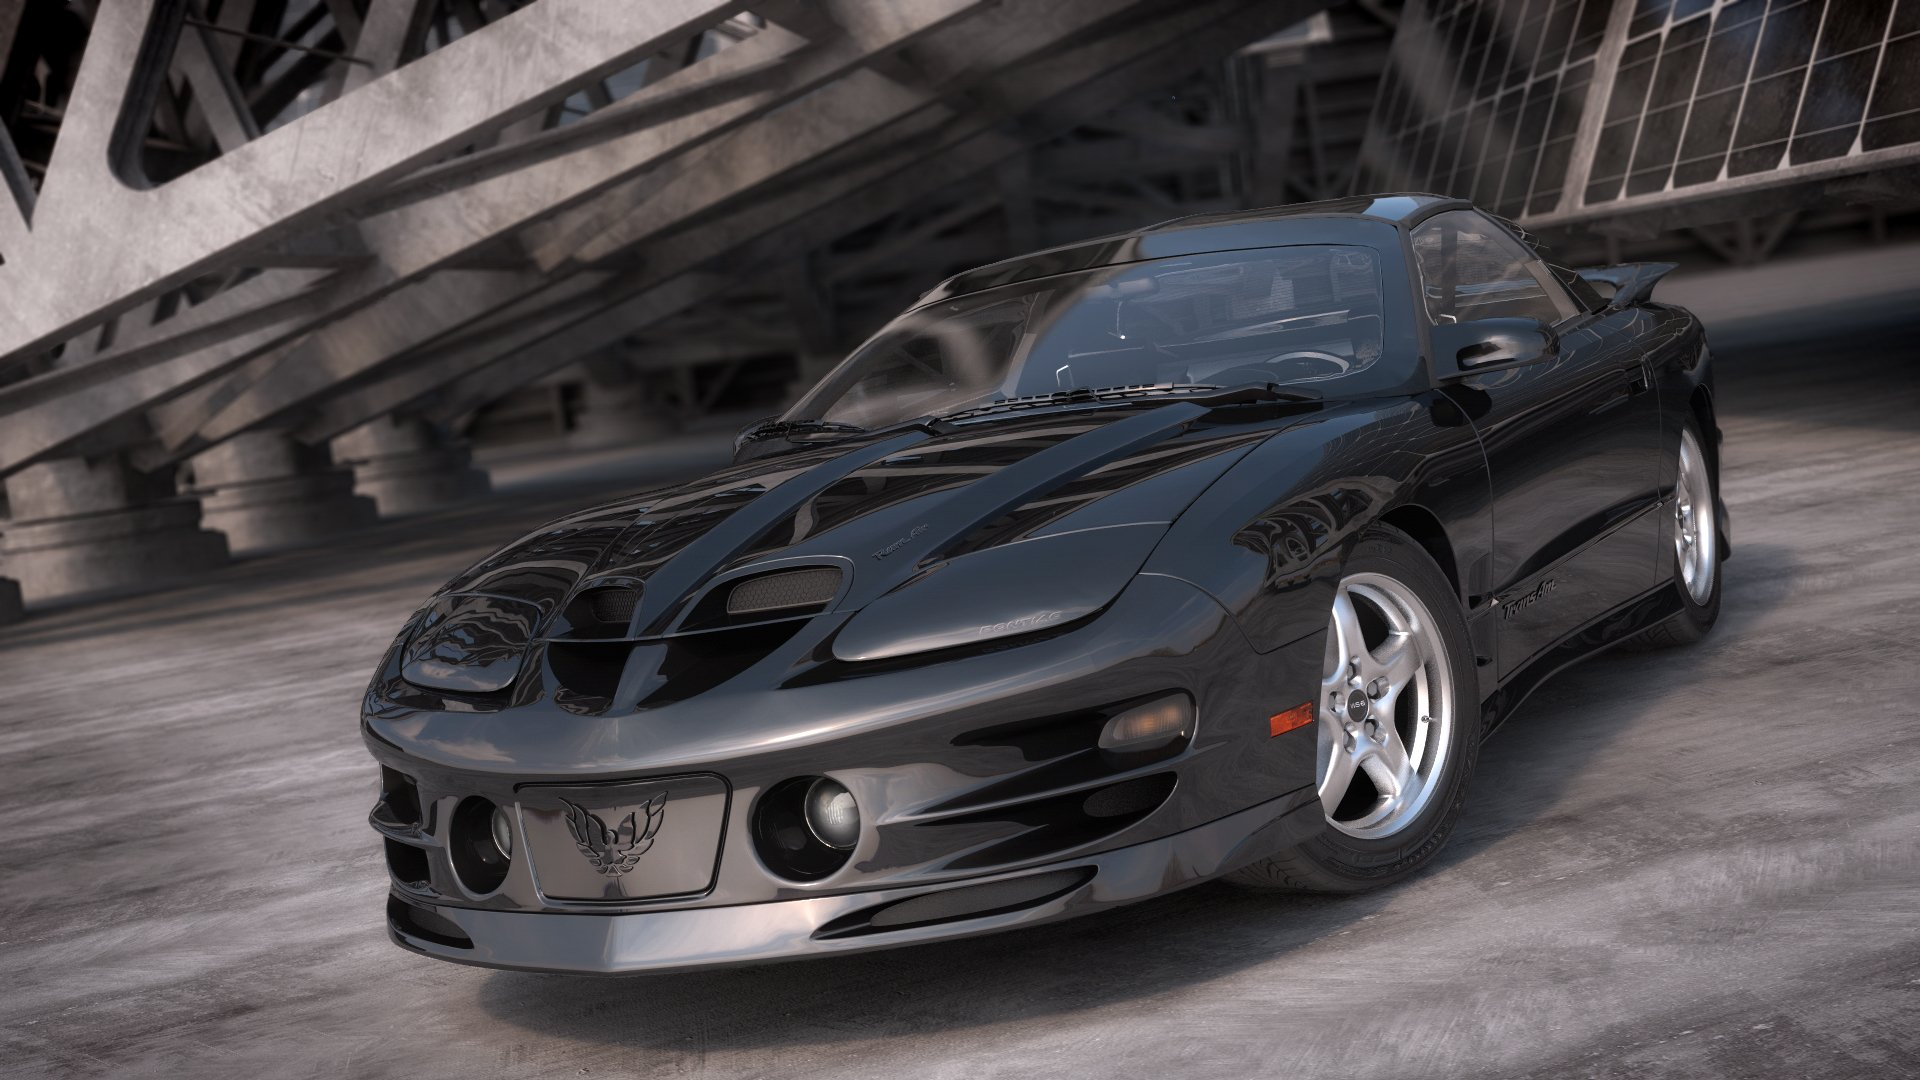 2002 Pontiac TransAm WS6 by jerry001 1920x1080